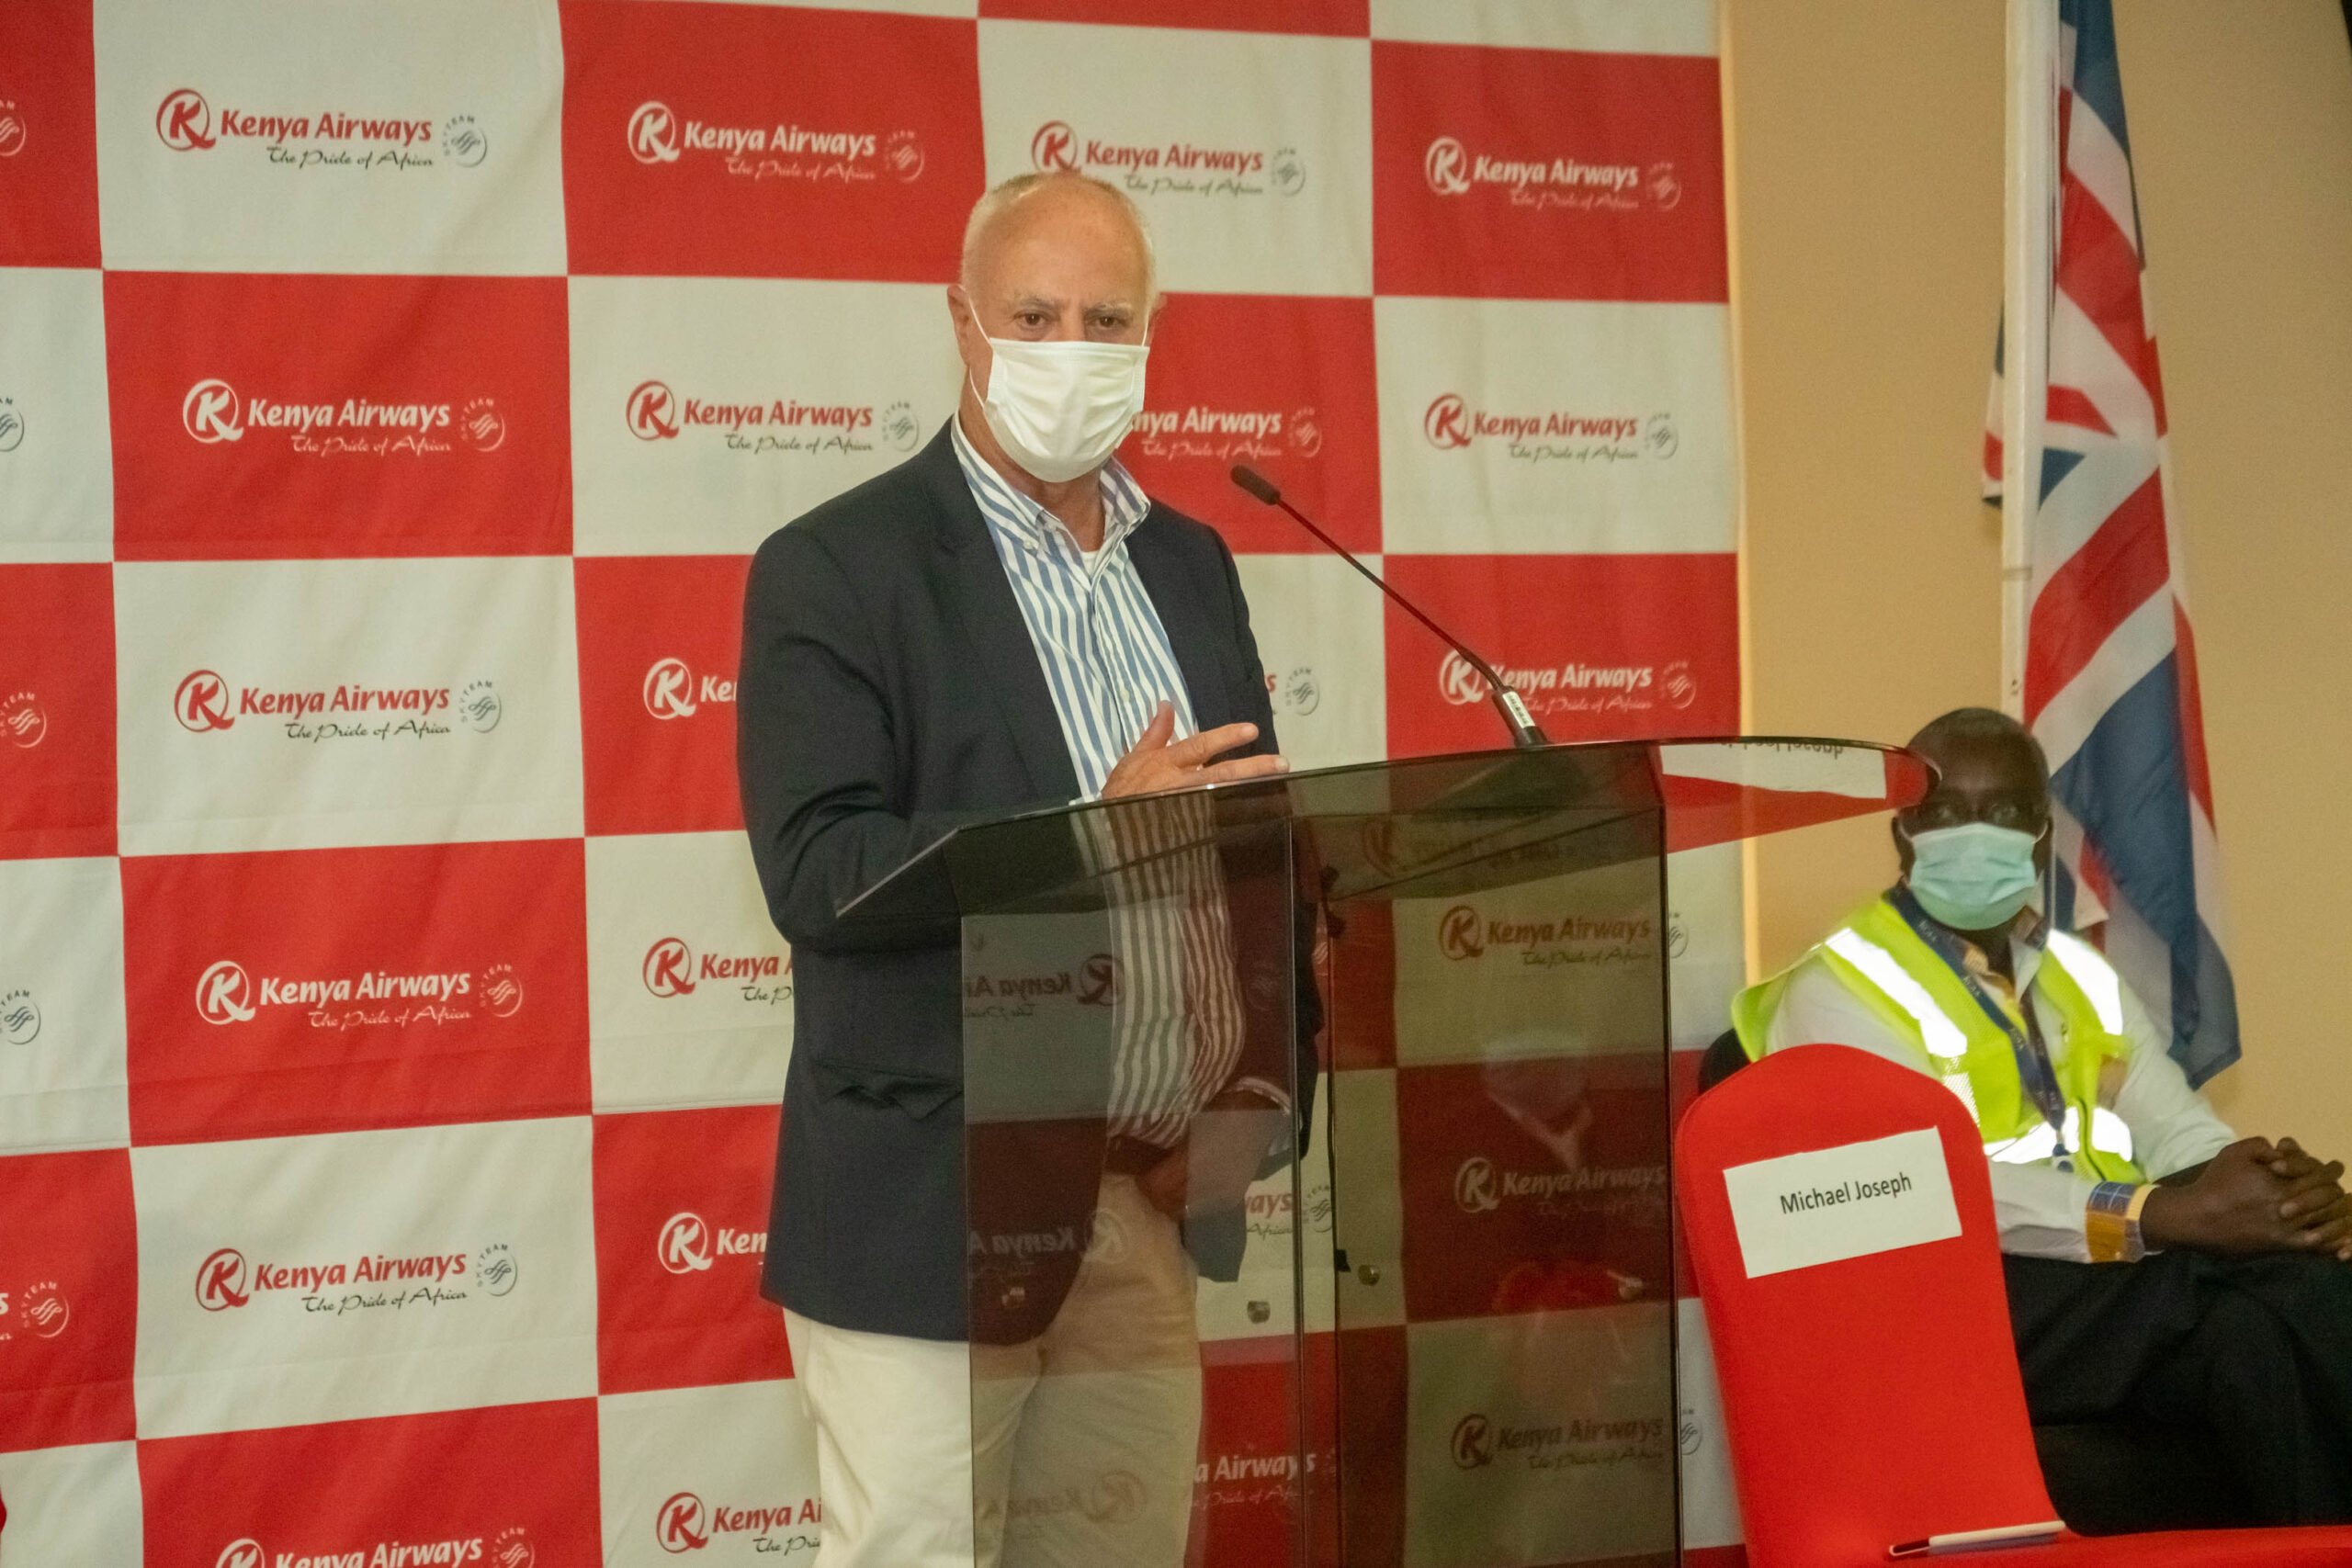 Kenya Airways Chairman of the Board Michael Joseph